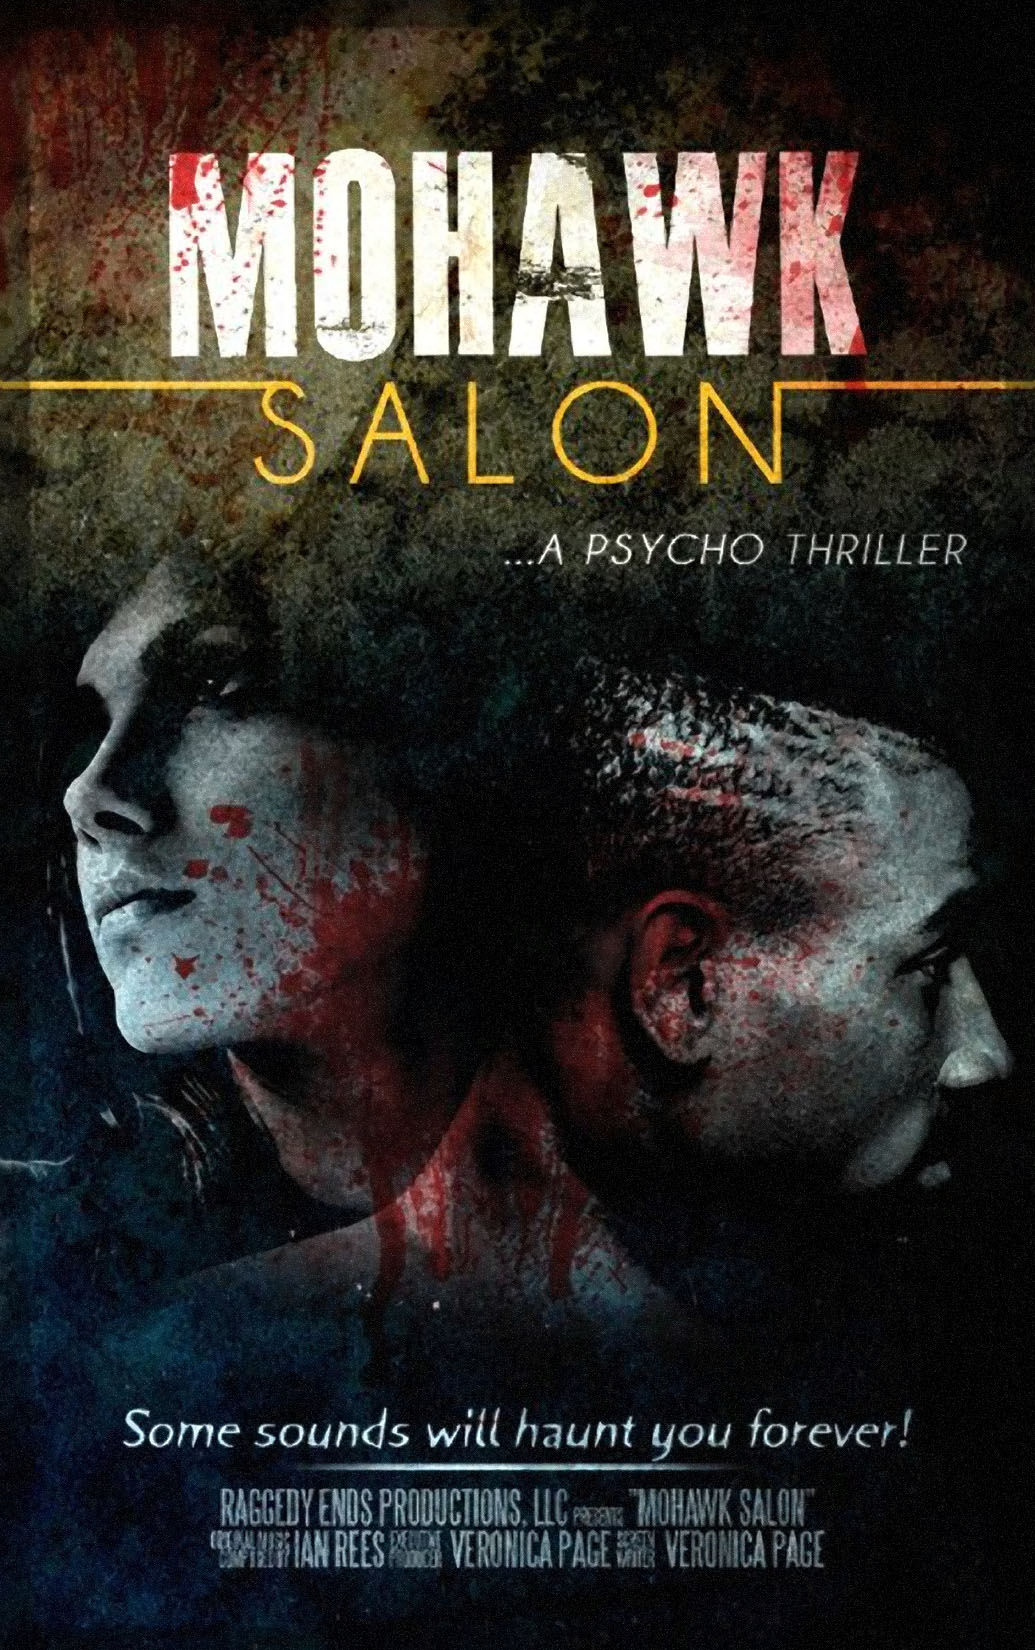 Mohawk Salon